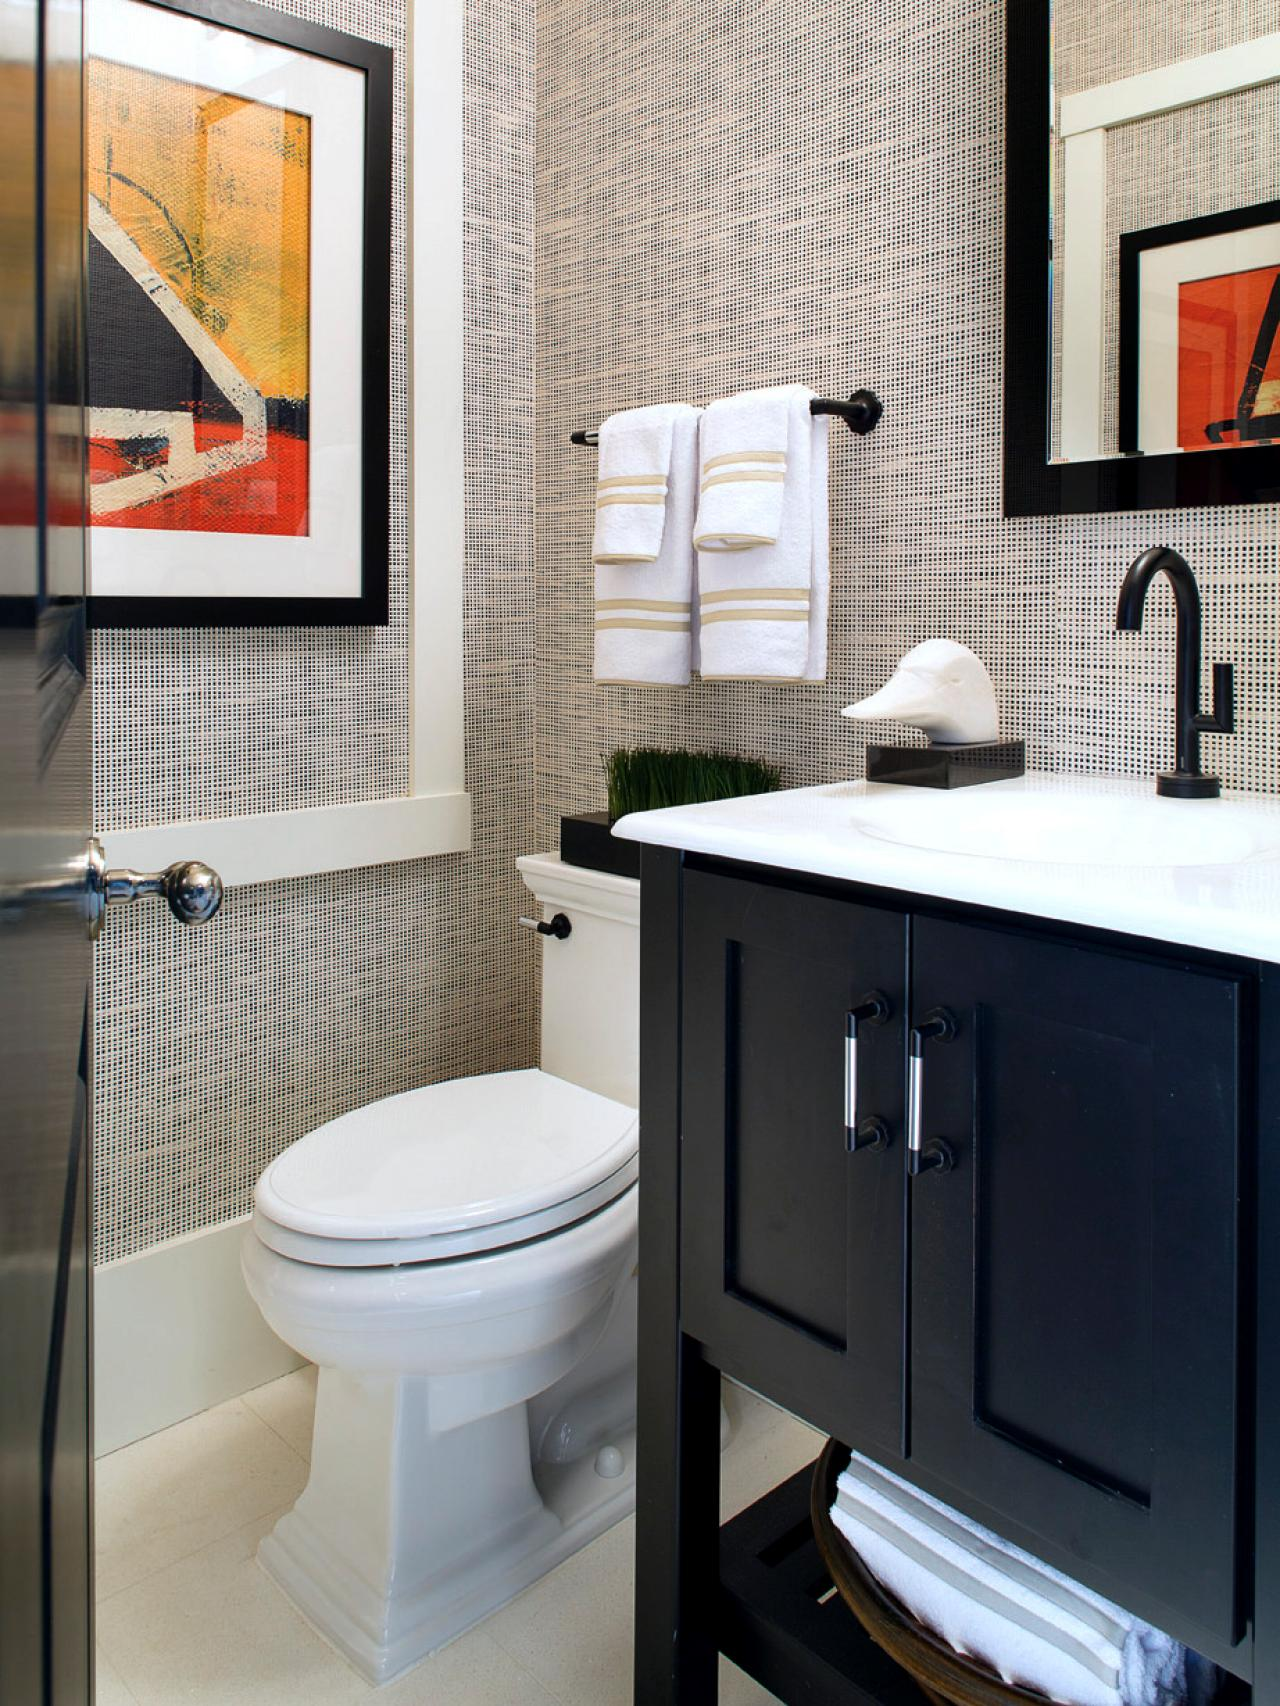 wallpaper ideas for small bathroom 30 expert tips for increasing the value of your home hgtv 26178